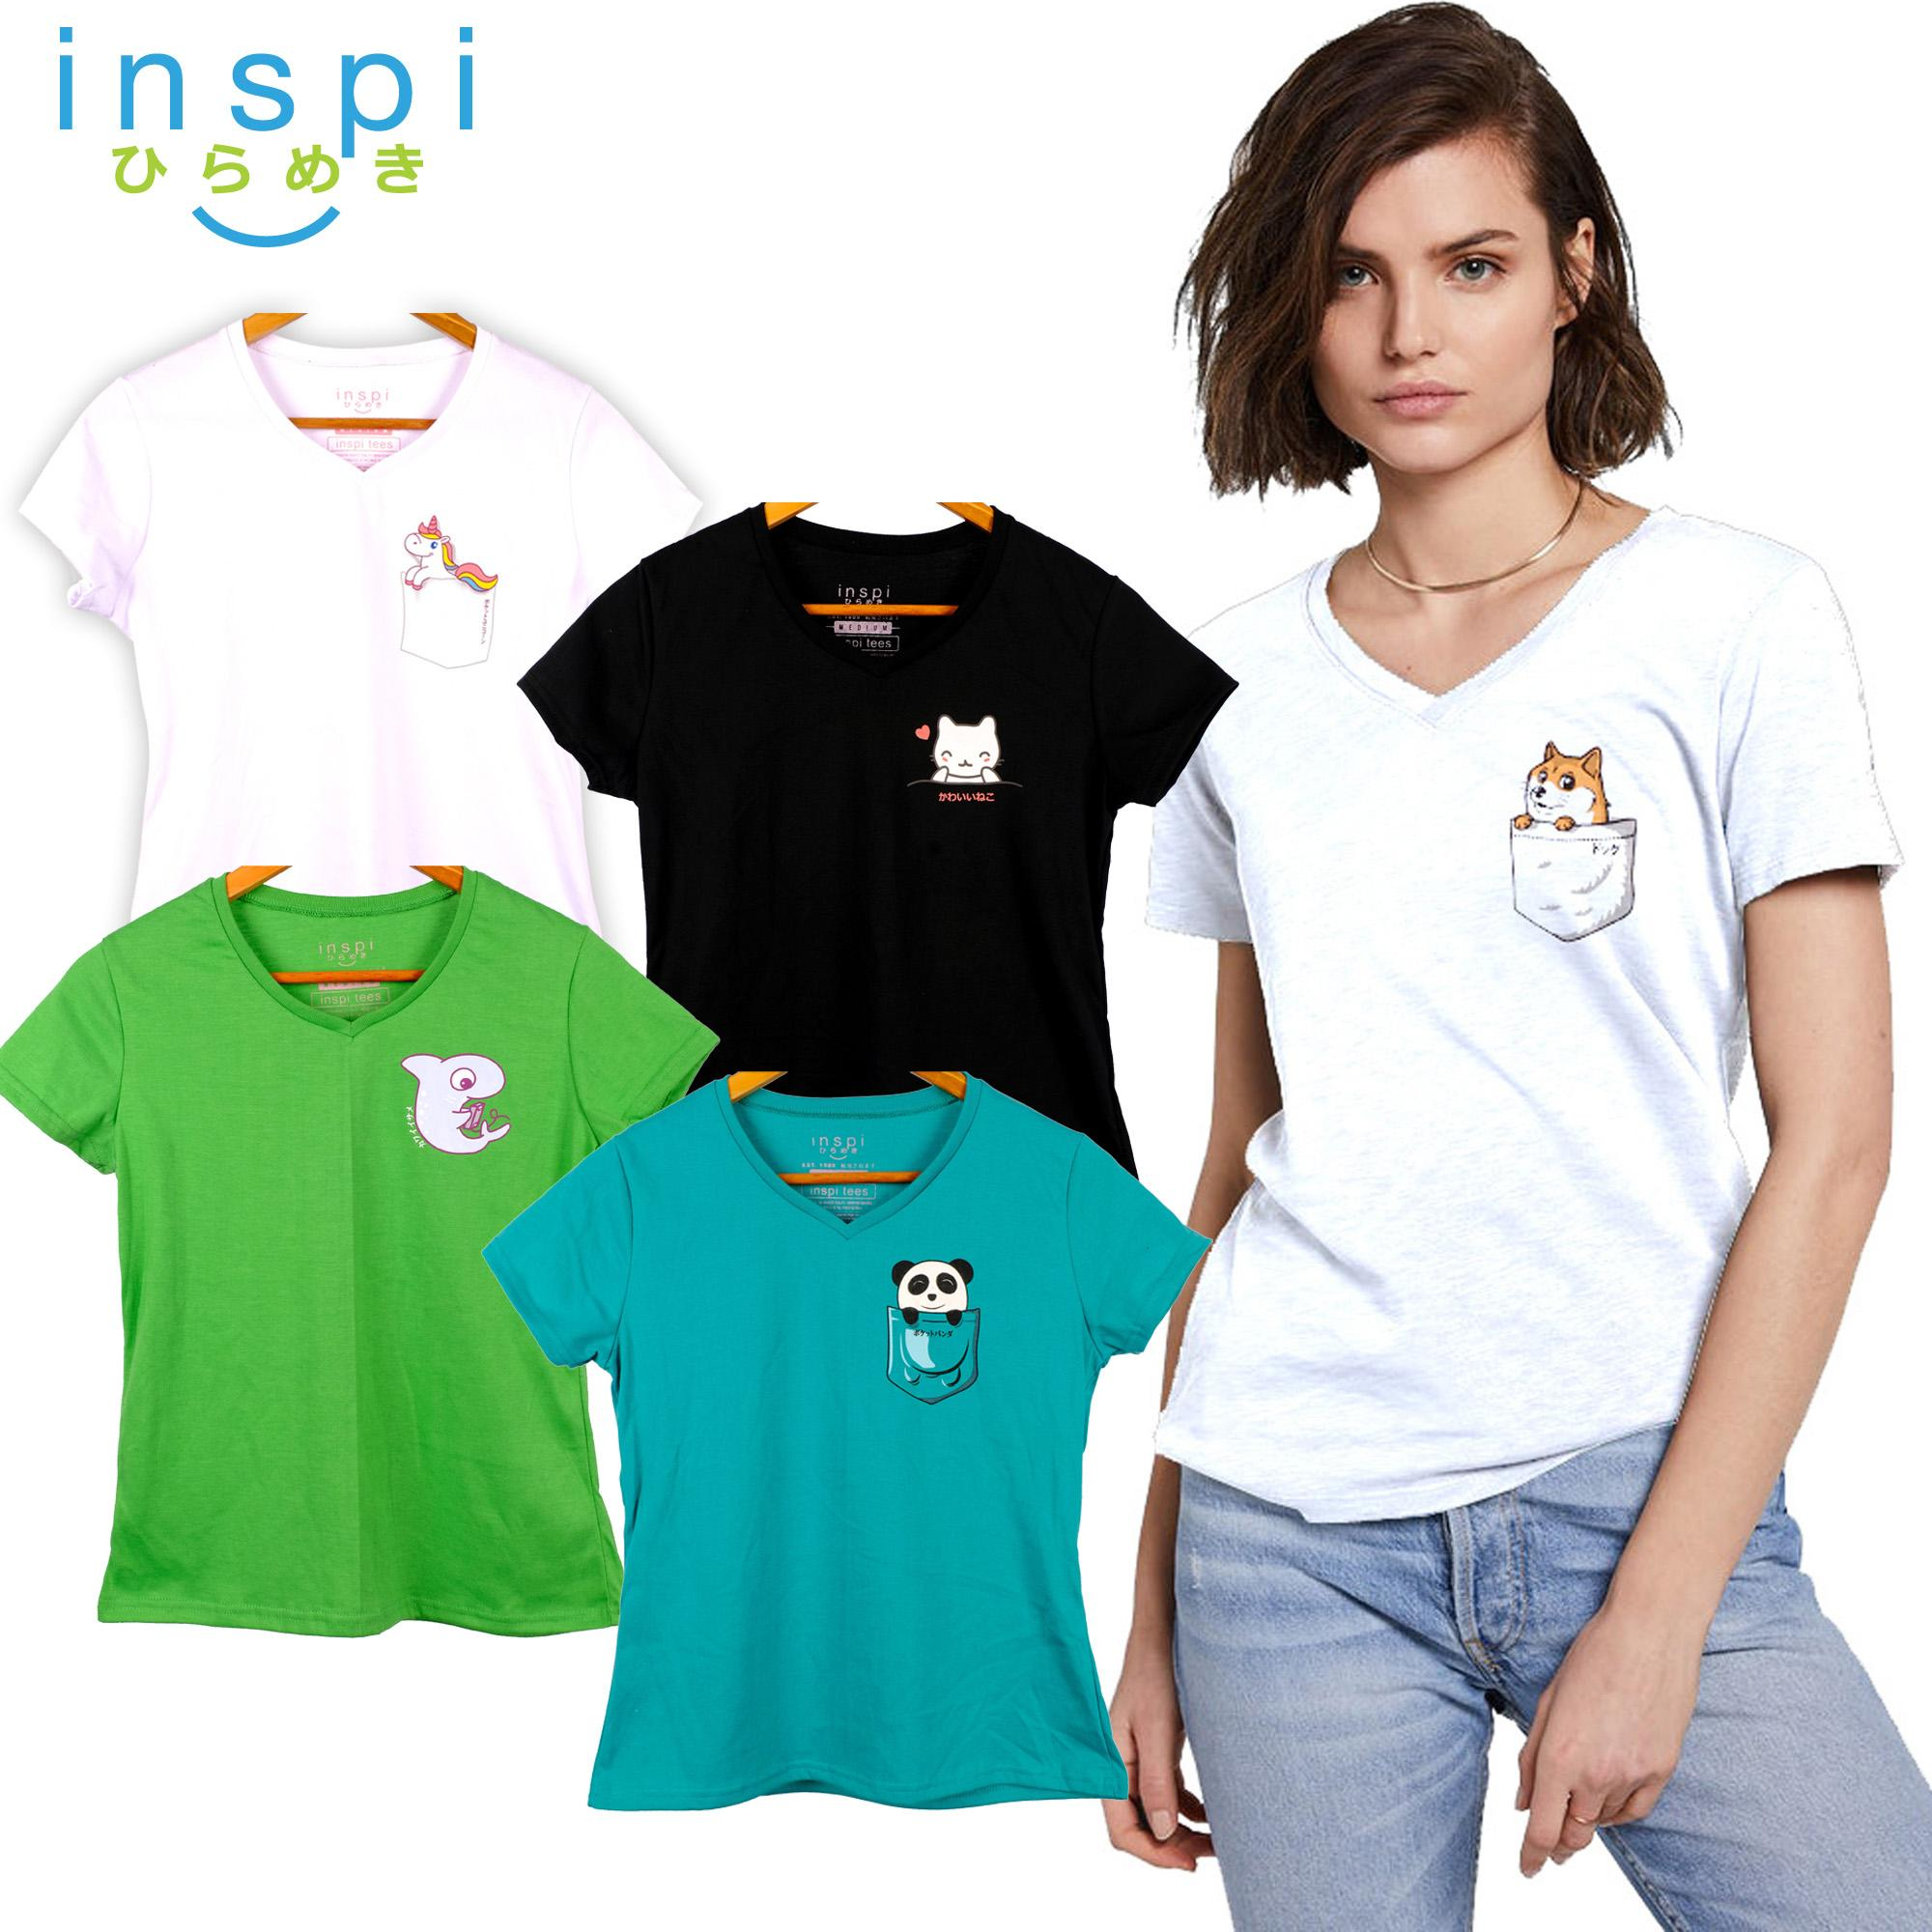 55d492707 INSPI Tees Ladies Semi Fit Pocket Friends Collection tshirt printed graphic tee  t shirt shirts tshirts